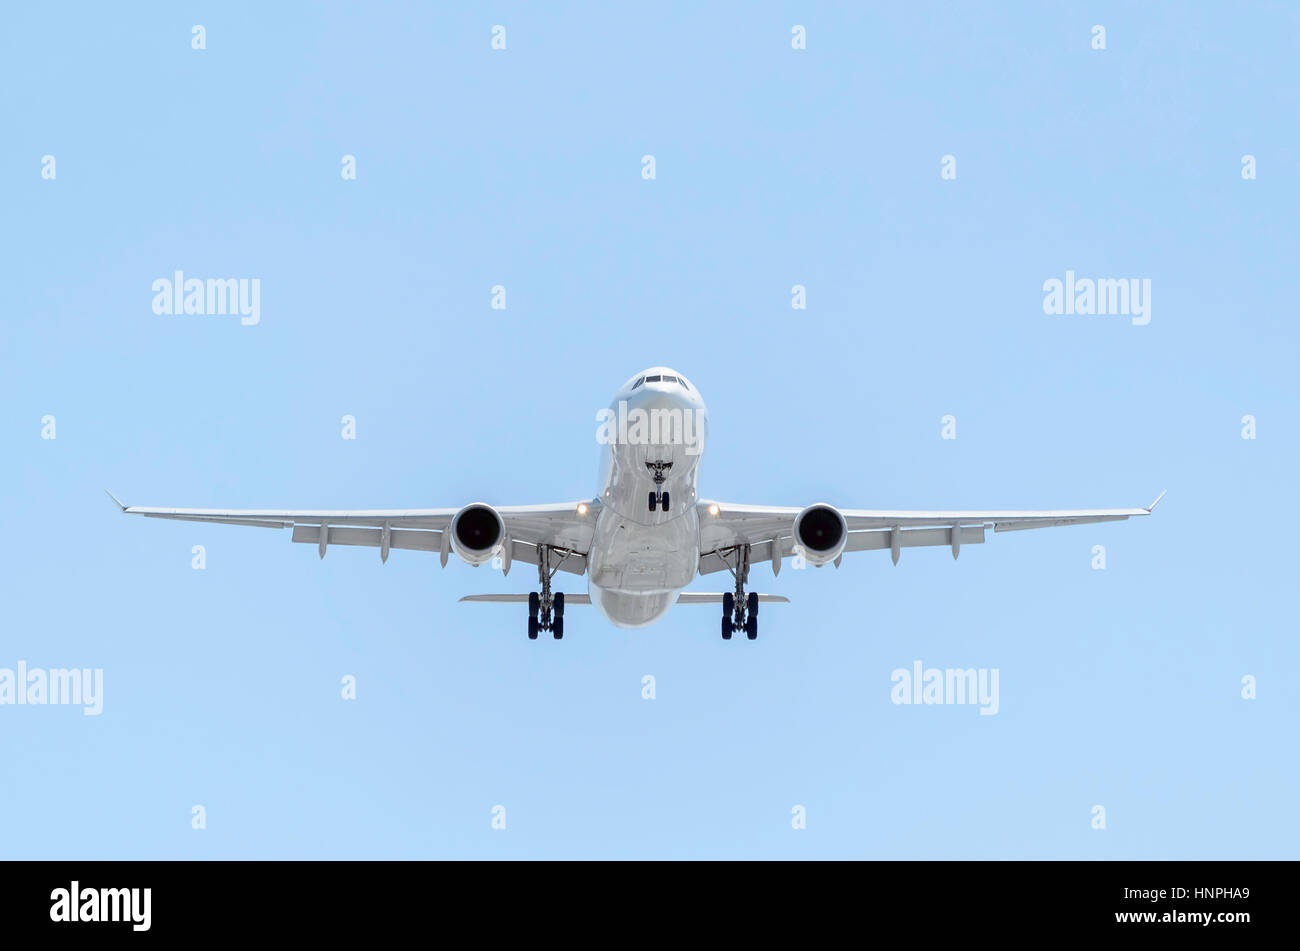 Fully white plane Airbus A330, of Iberia airline, is landing. Spanish company. Blue sky. Sunny day. - Stock Image